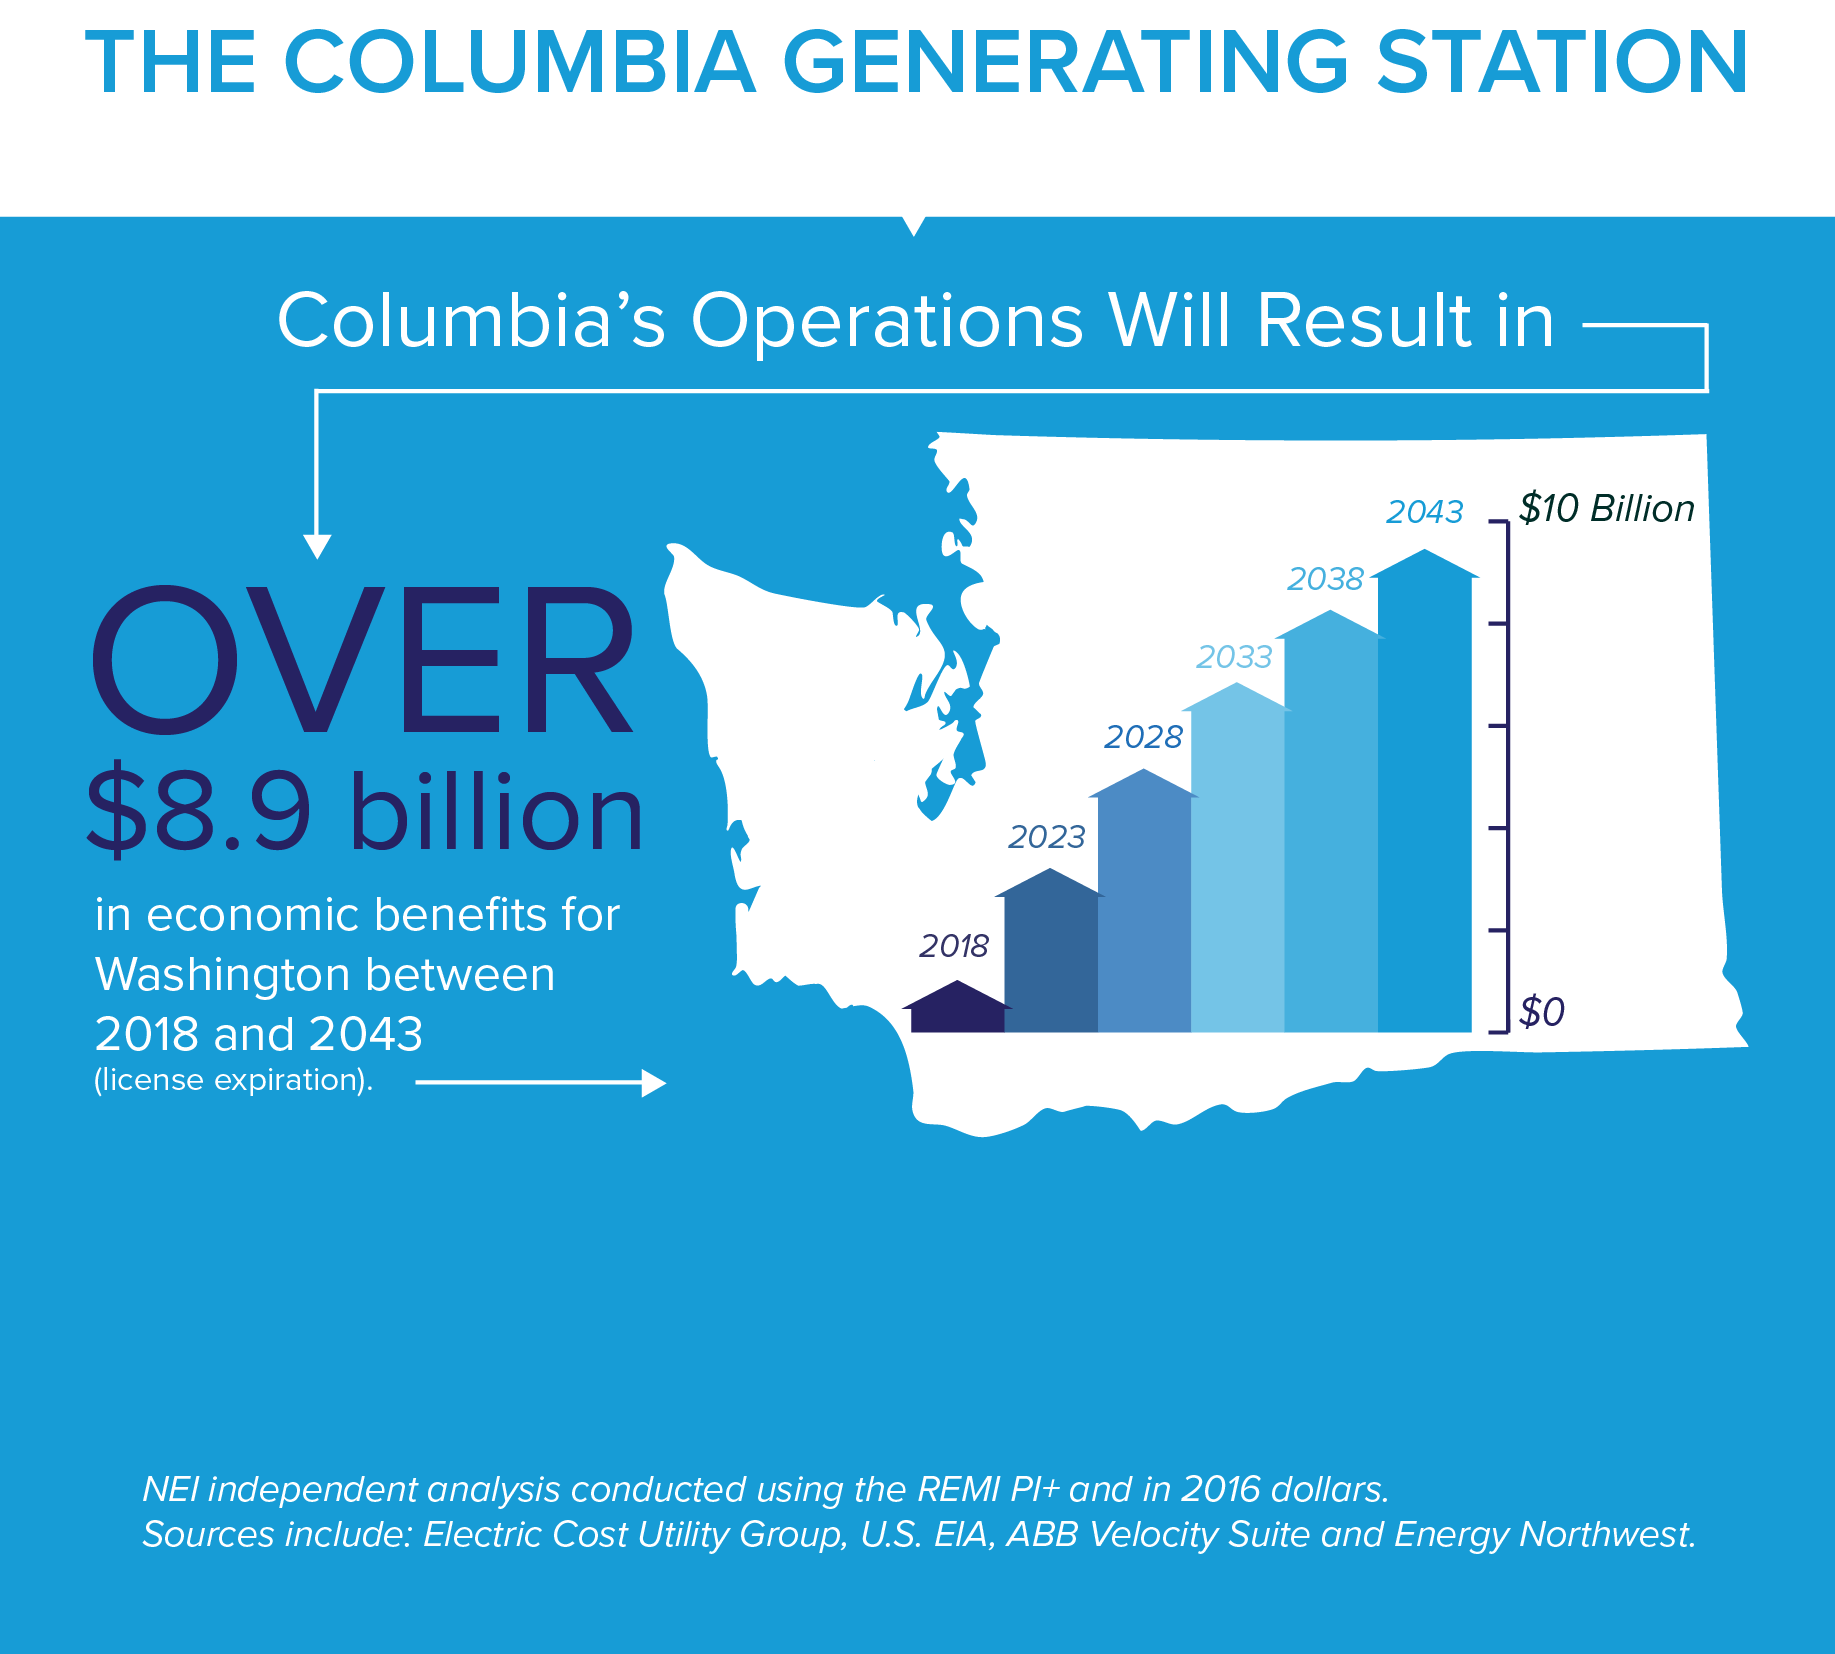 The Columbia Generating Station: Columbia's operations will result in over a billion dollars in economic benefits for Washington between 2018 and 2043 (license expiration)